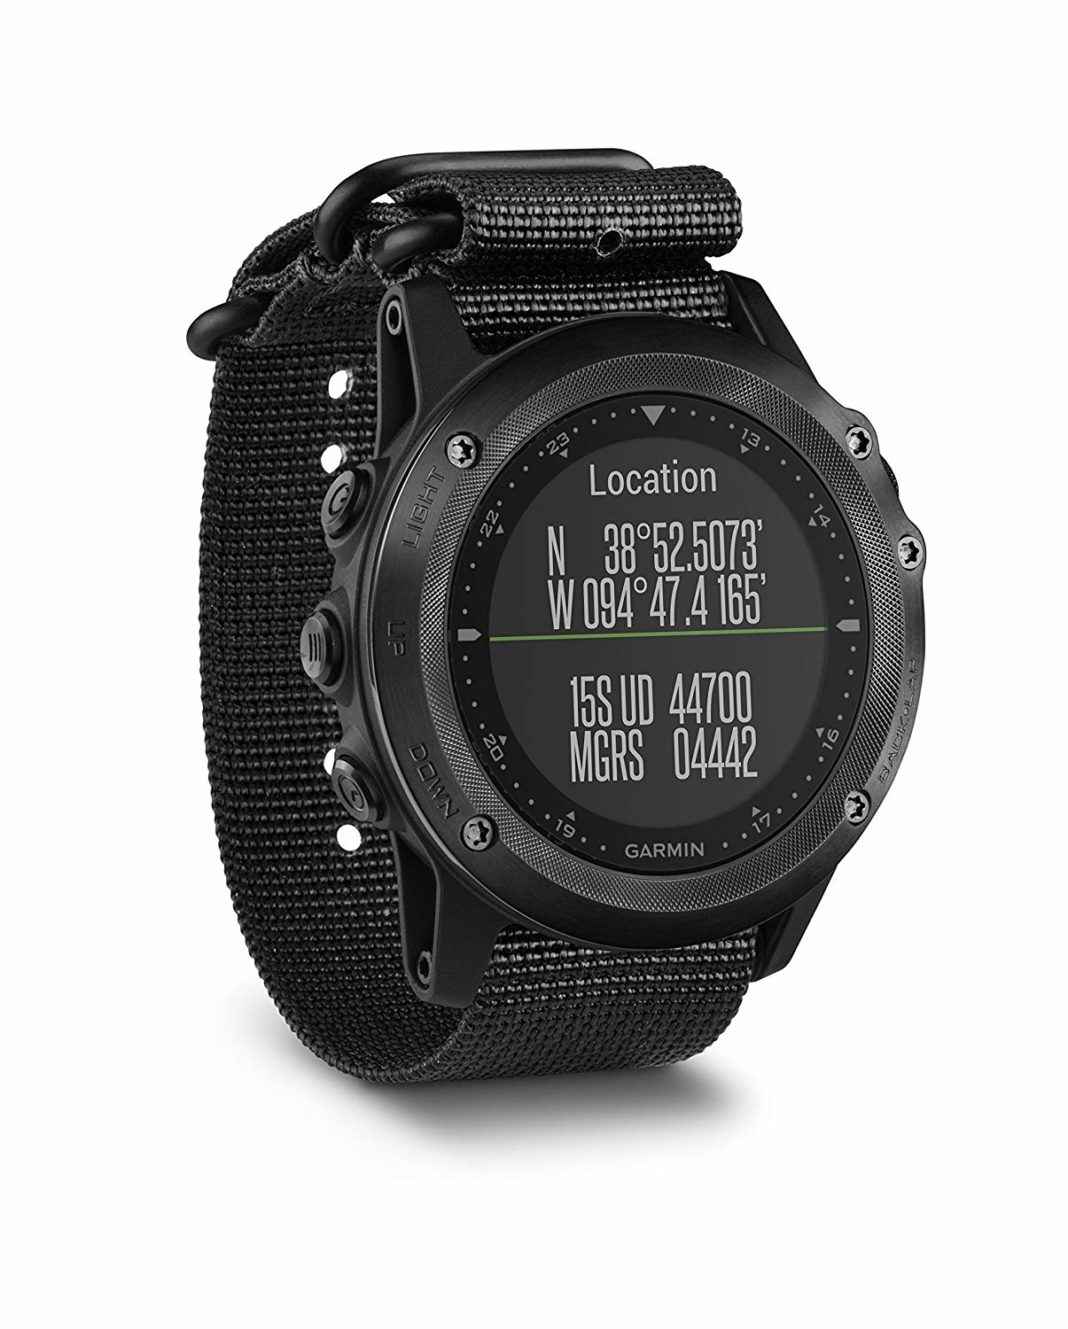 Garmin Tactix Bravo - Basic Features